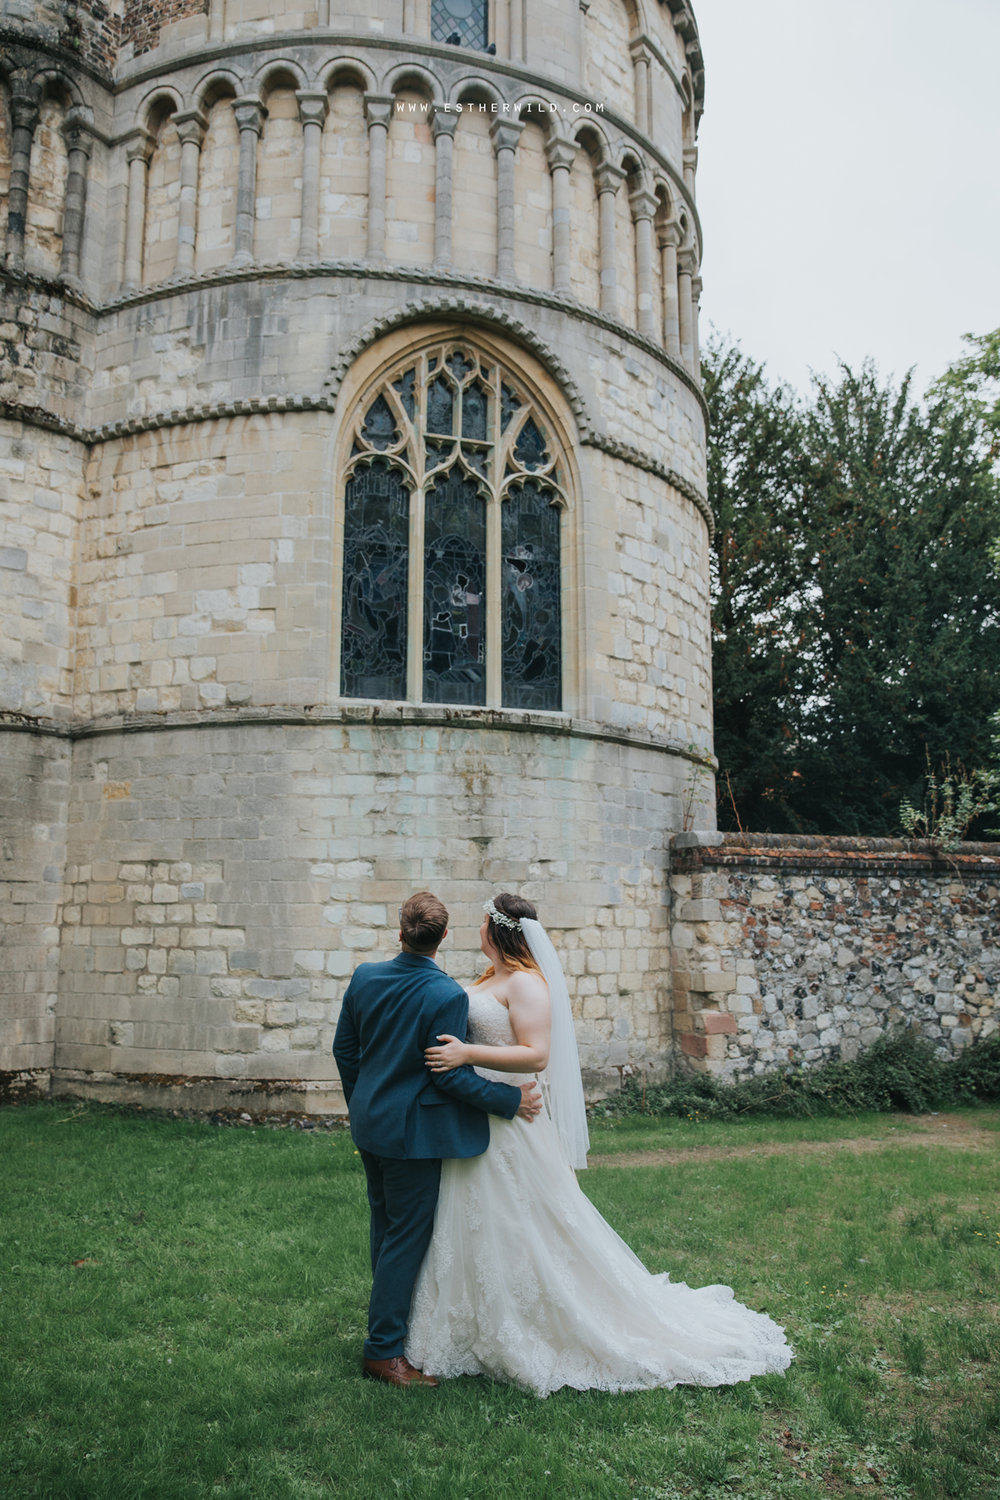 Norwich_Castle_Arcade_Grosvenor_Chip_Birdcage_Cathedral_Cloisters_Refectory_Wedding_Photography_Esther_Wild_Photographer_Norfolk_Kings_Lynn_3R8A1906.jpg